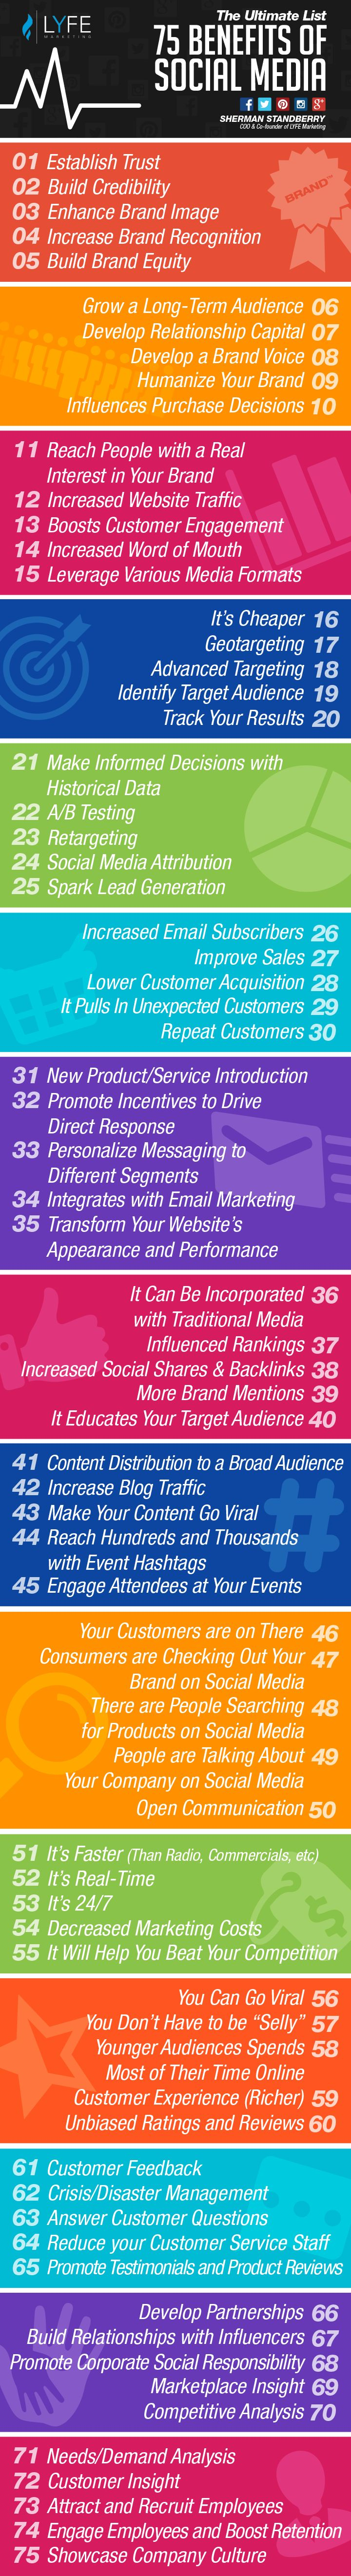 Are you growing your business on social media? Learn ALL of the benefits of social media marketing. Here are 75 key benefits that directly contribute to the ROI of social media!